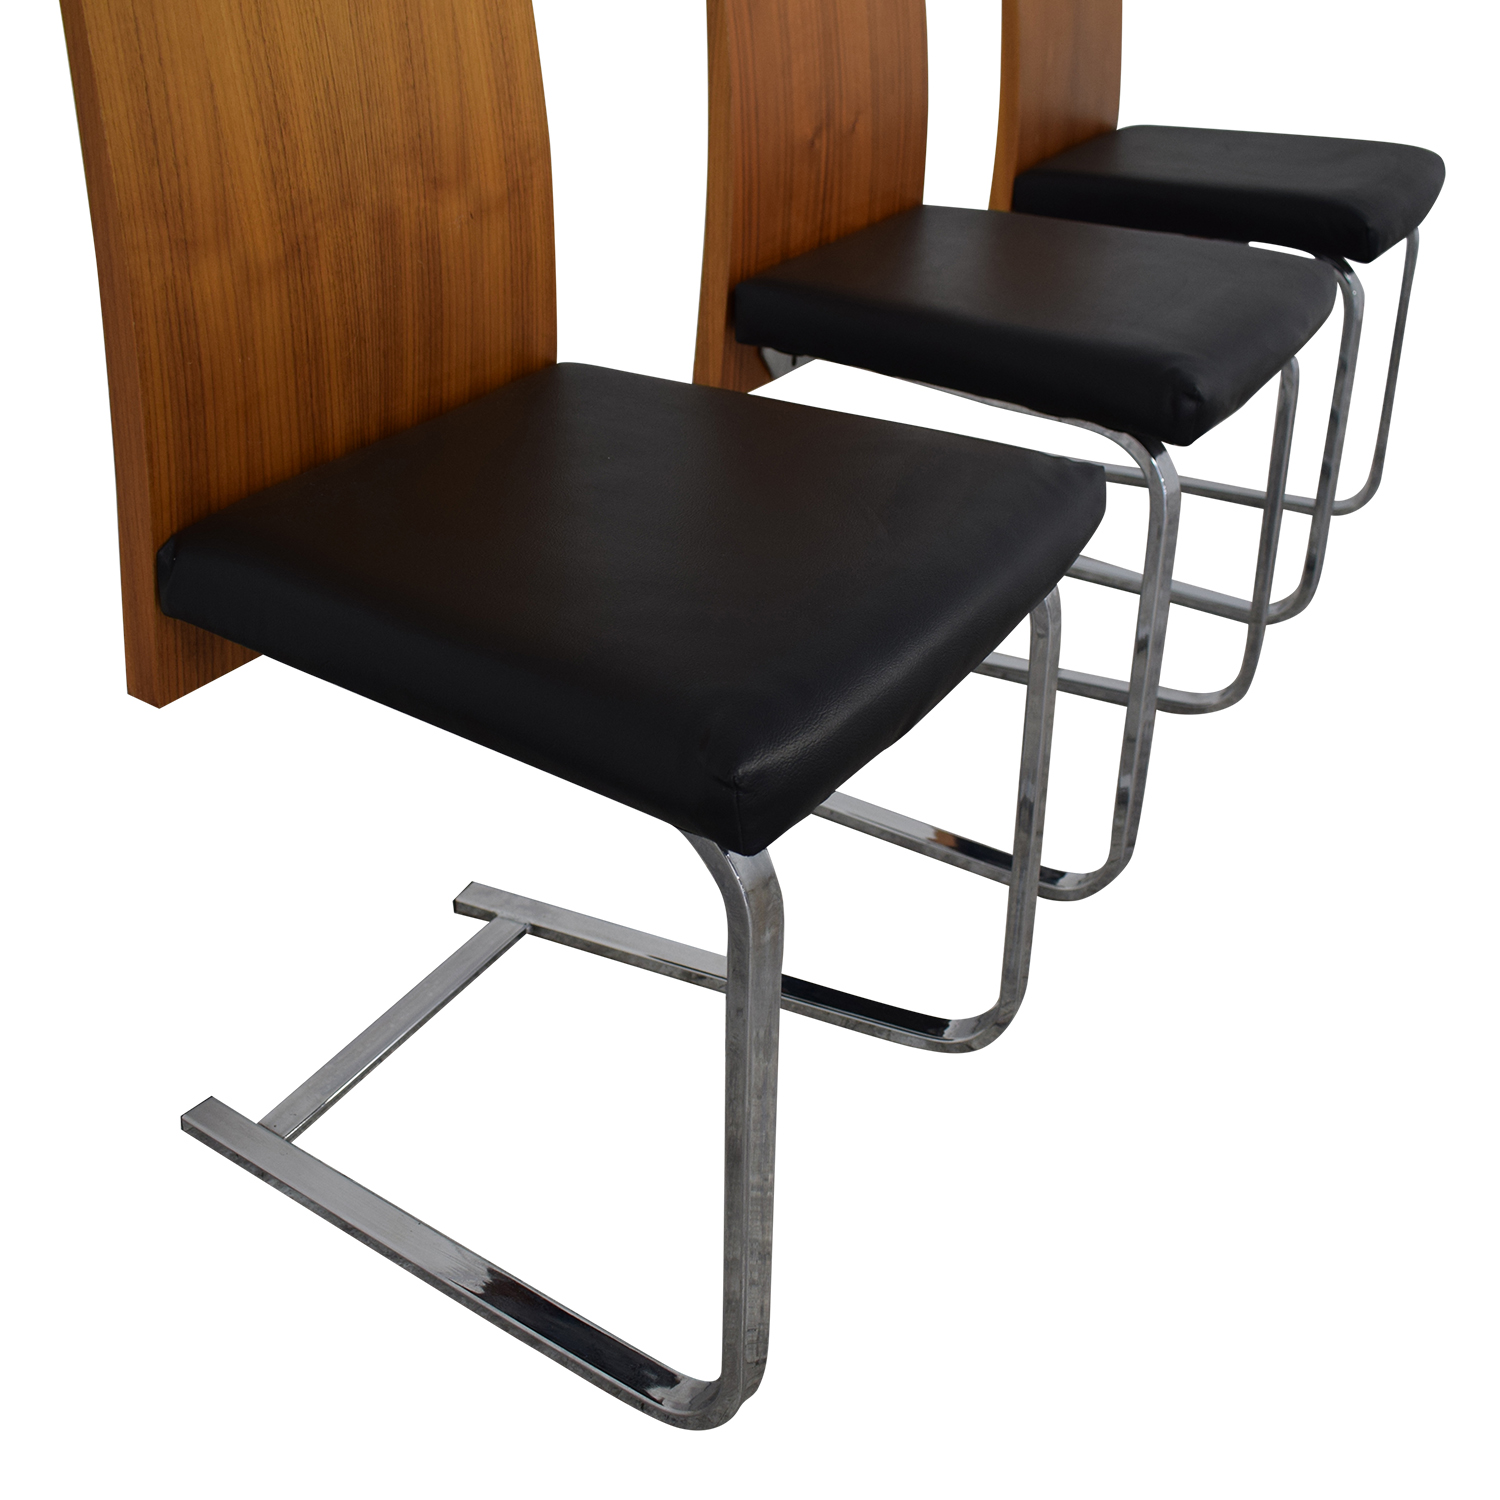 buy Domitalia Jeff-sl Chrome Black Leather and Wood Dining Chairs Domitalia Chairs